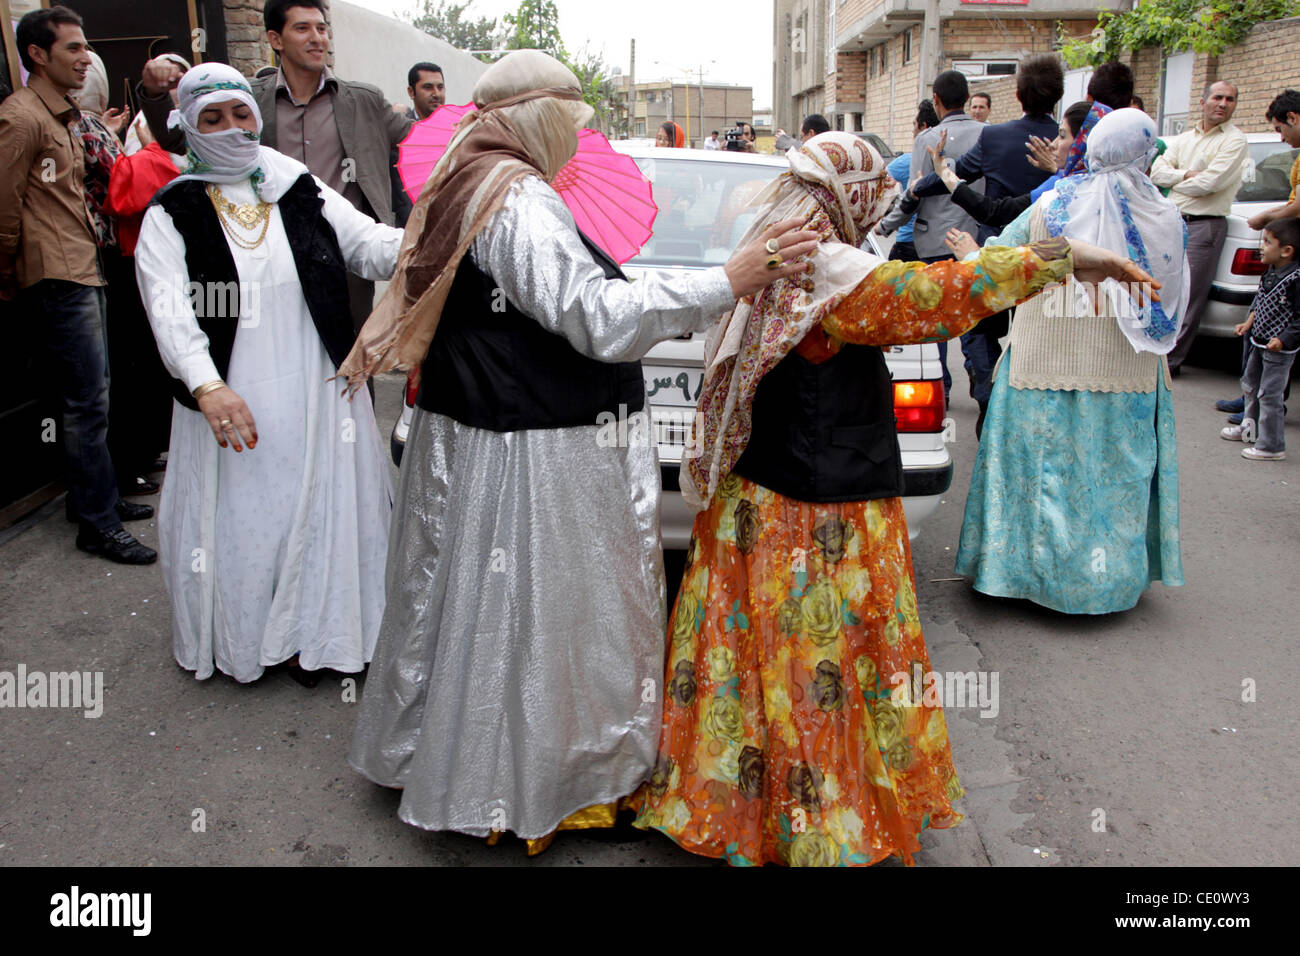 September 11, 2011: Women dance with traditional dresses around the wedding car during a wedding party in Moghan - Stock Image